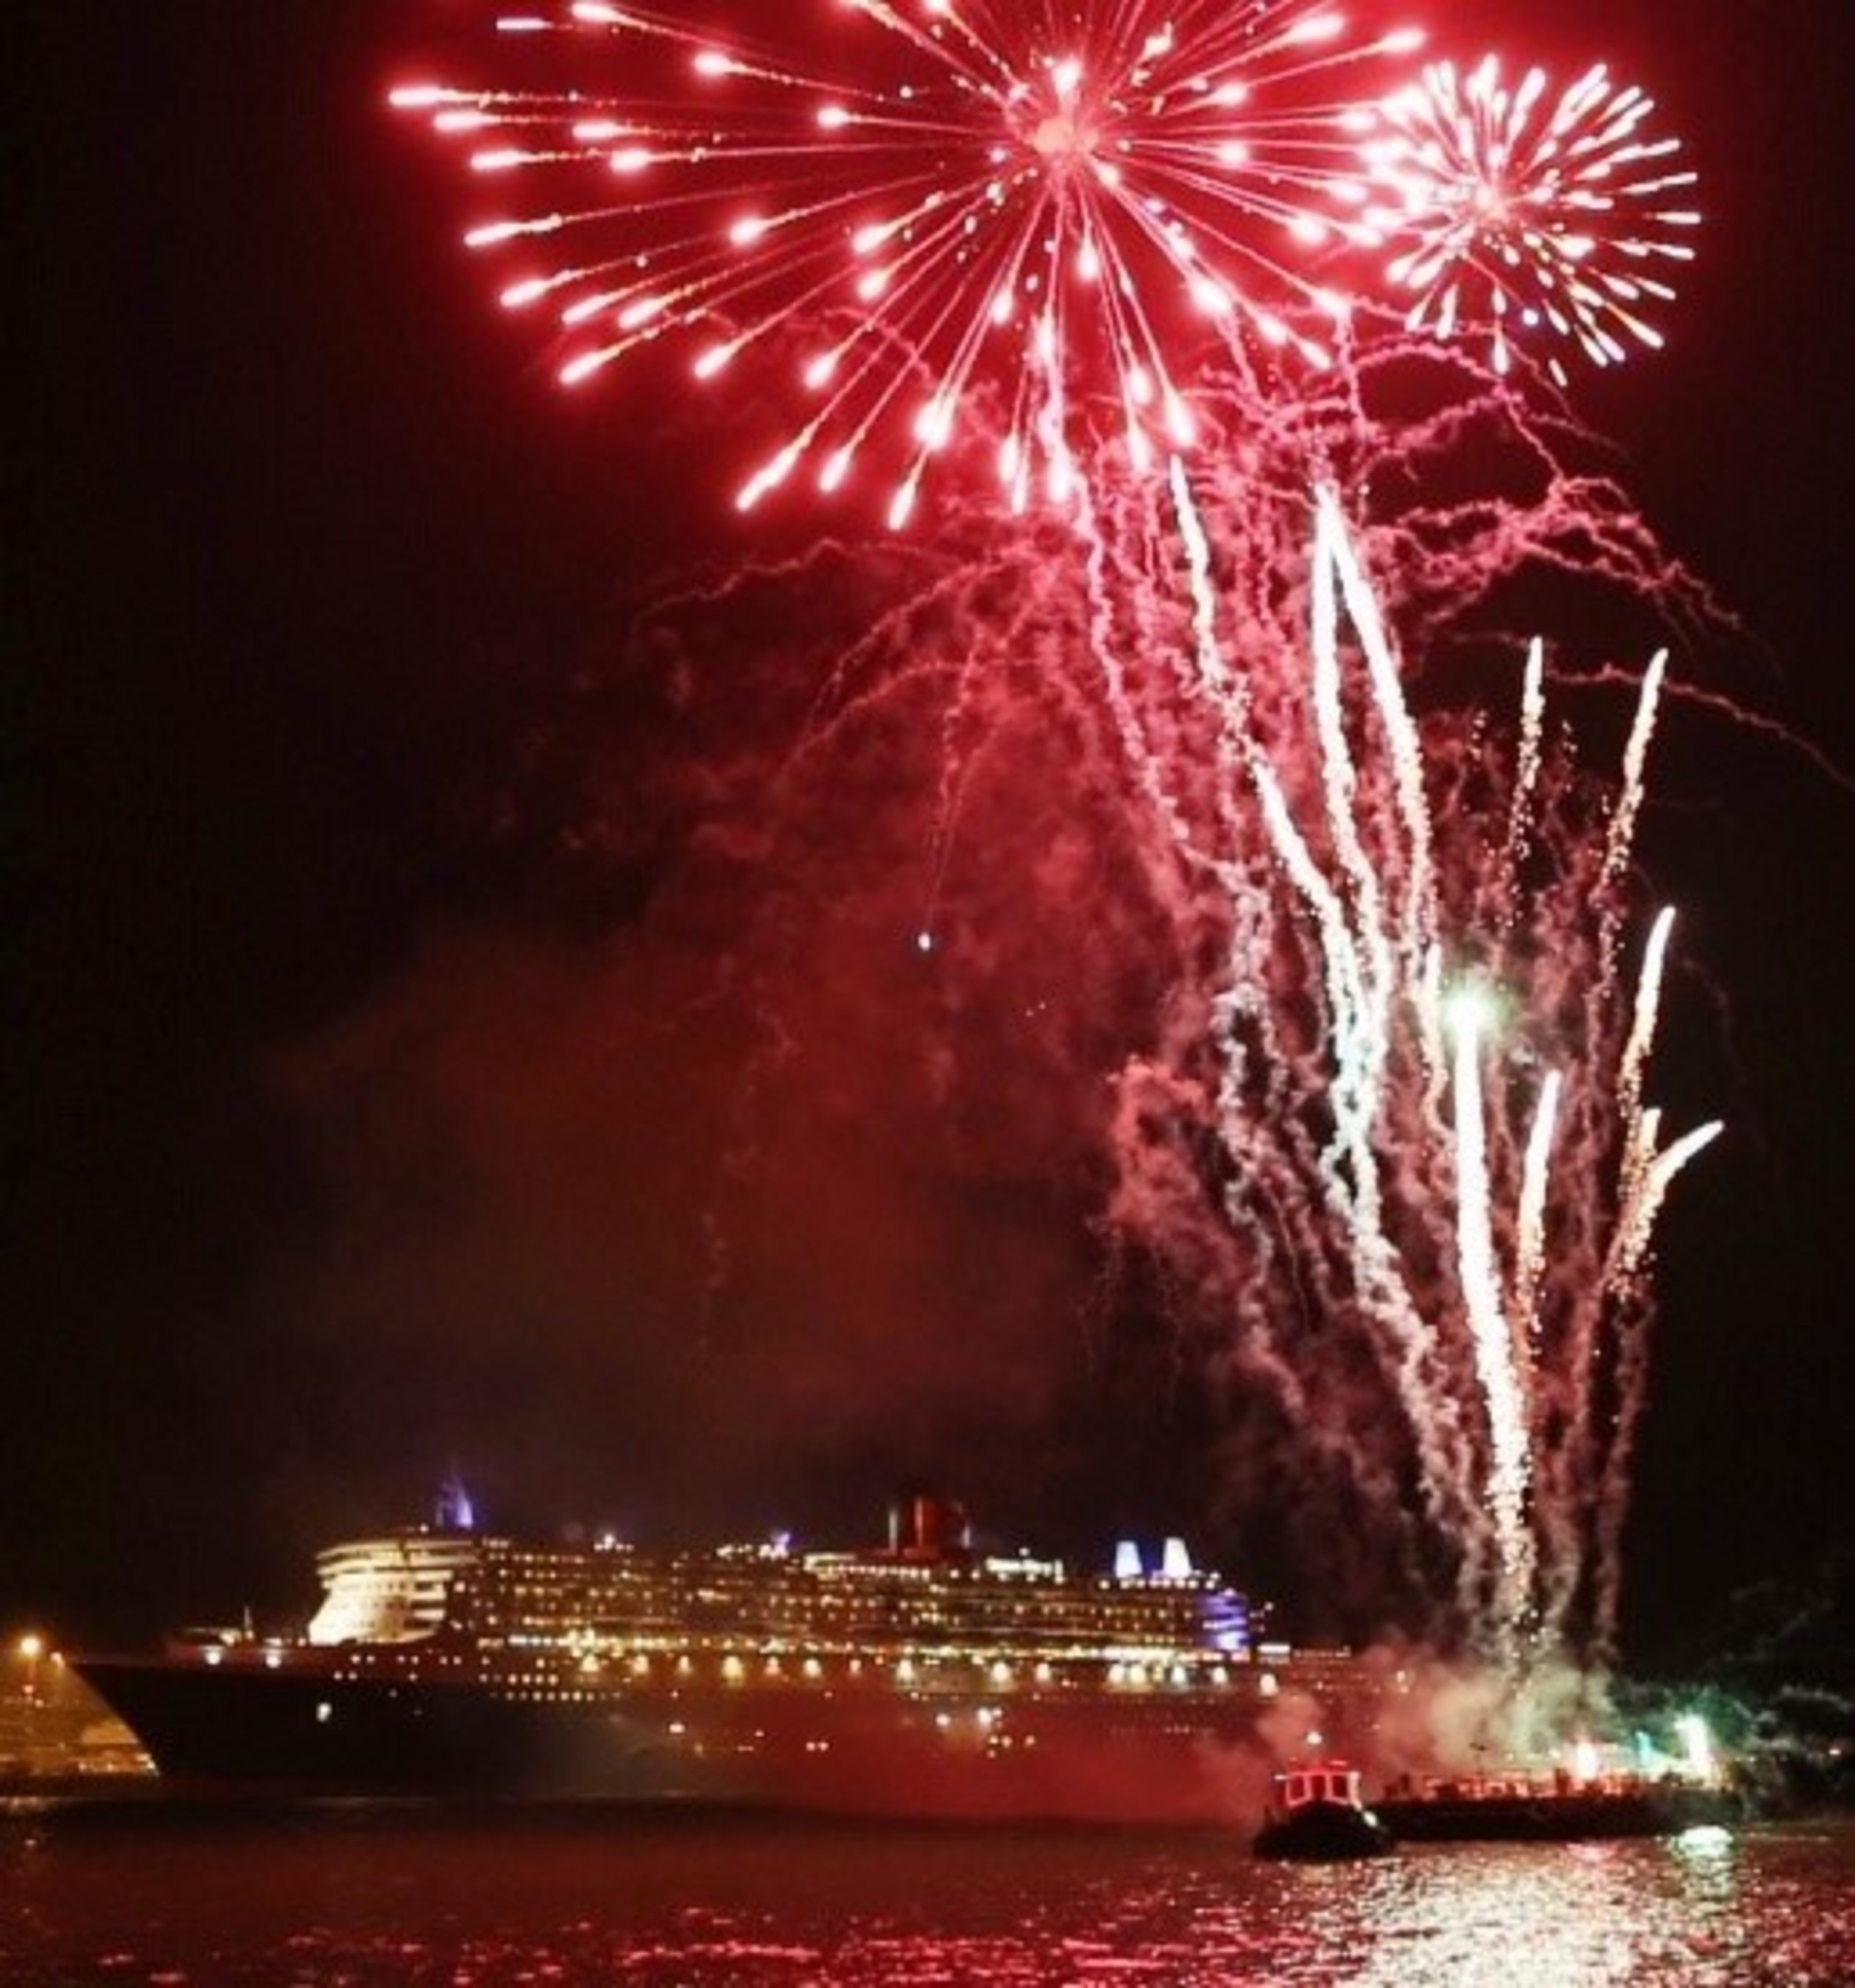 Fireworks added a festive celebration to flagship Queen Mary 2's World Voyage departure from Southampton on 10 January